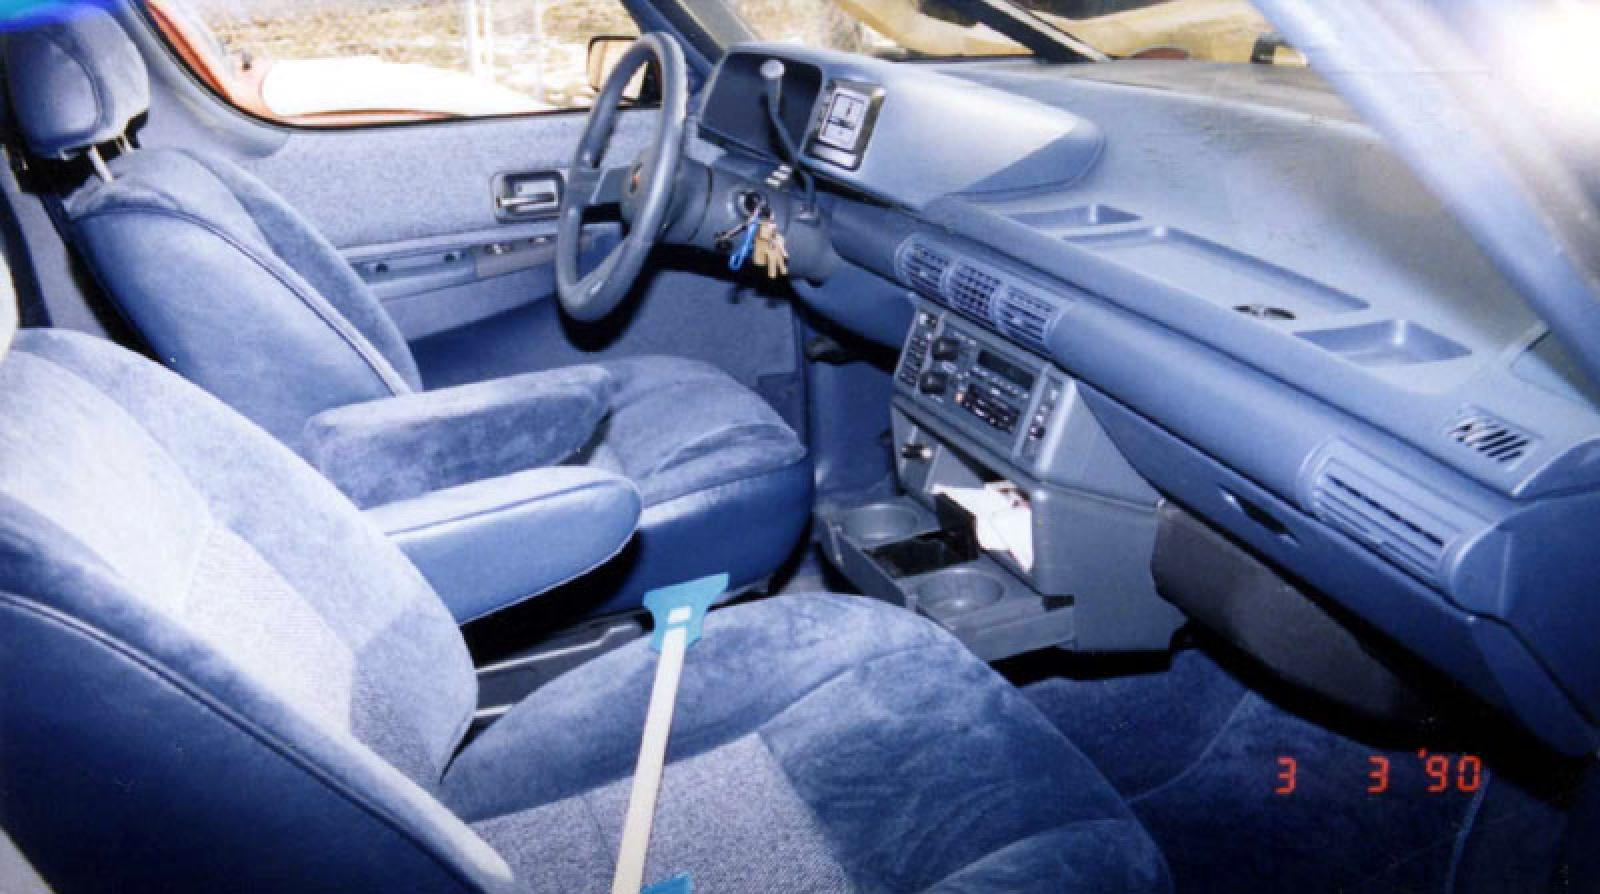 1990 Chevy Lumina Seat Covers